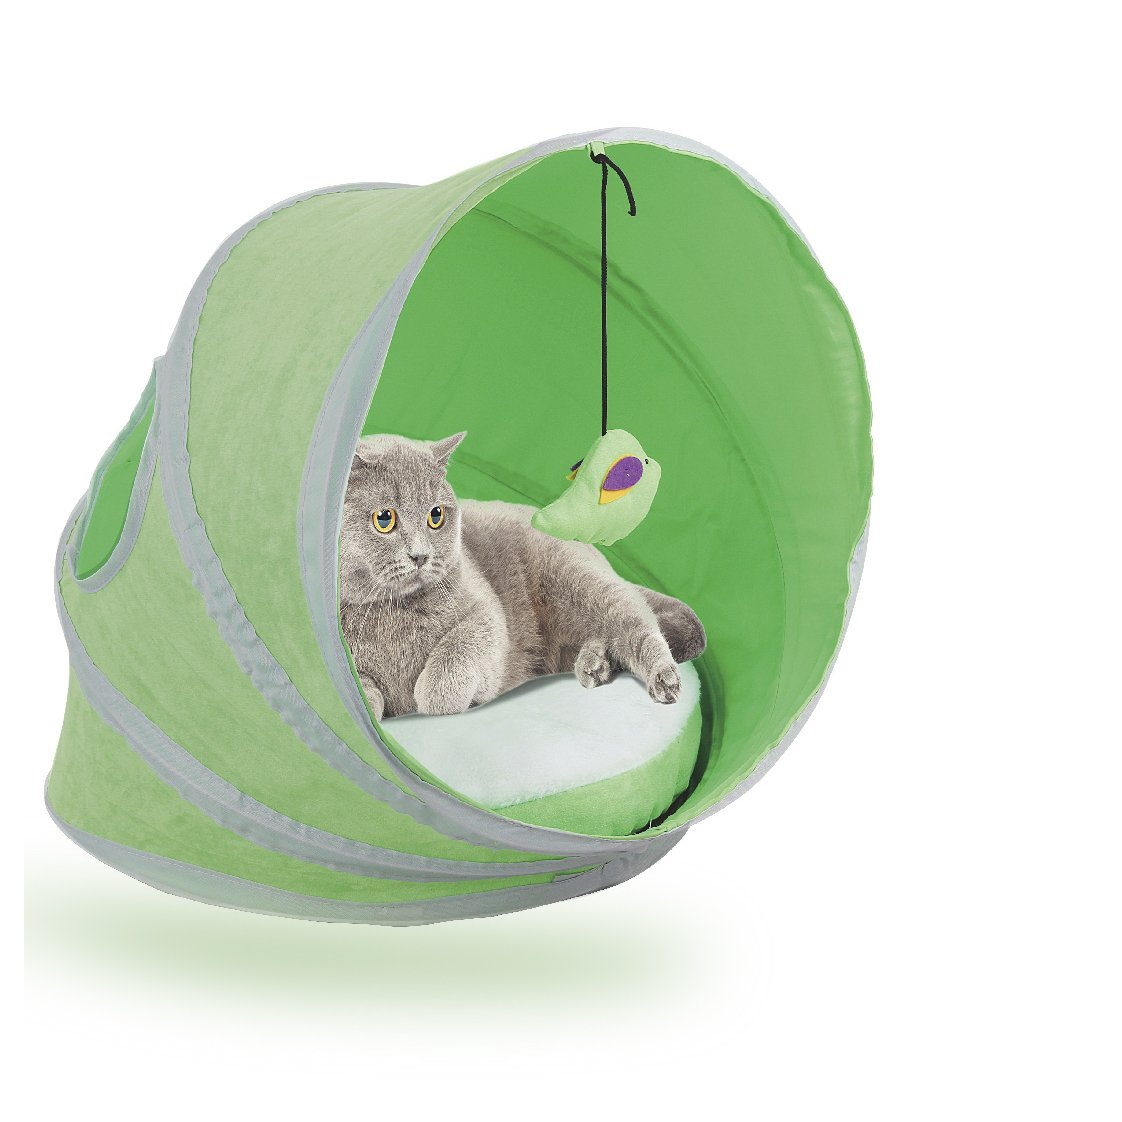 Pawise Pop-up Pet Cat House Tent Stress Free Trip, New Pack (Free Mouse + Cat Collar)